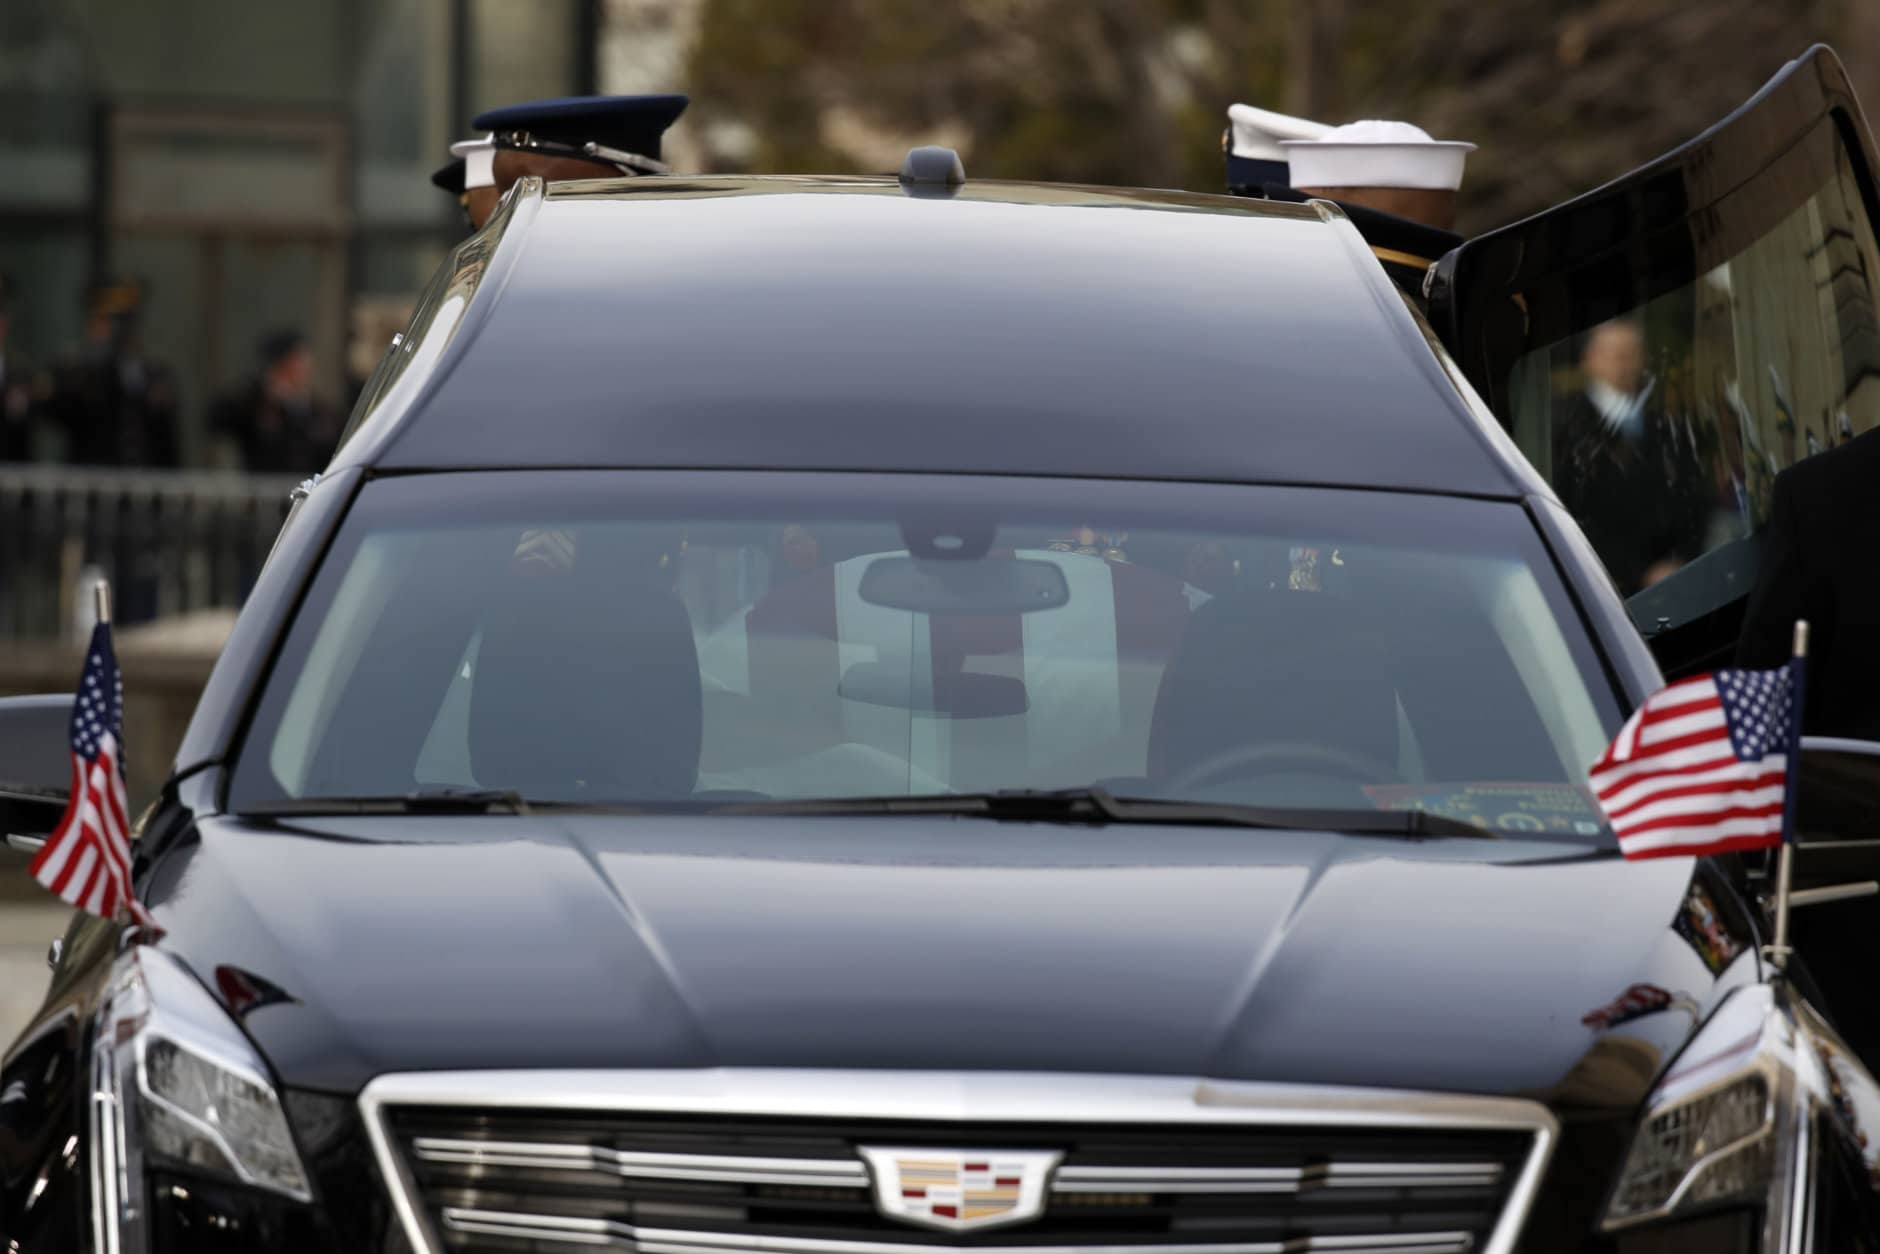 WASHINGTON, DC - DECEMBER 05: (AFP OUT) The flag-draped casket of former President George H.W. Bush is carried by a joint services military honor guard into a hearse after a State Funeral at the Washington National Cathedral on December 5, 2018 in Washington, DC. President Bush will be buried at his final resting place at the George H.W. Bush Presidential Library at Texas A&M University in College Station, Texas. A WWII combat veteran, Bush served as a member of Congress from Texas, ambassador to the United Nations, director of the CIA, vice president and 41st president of the United States. (Photo by Alex Brandon - Pool/Getty Images)